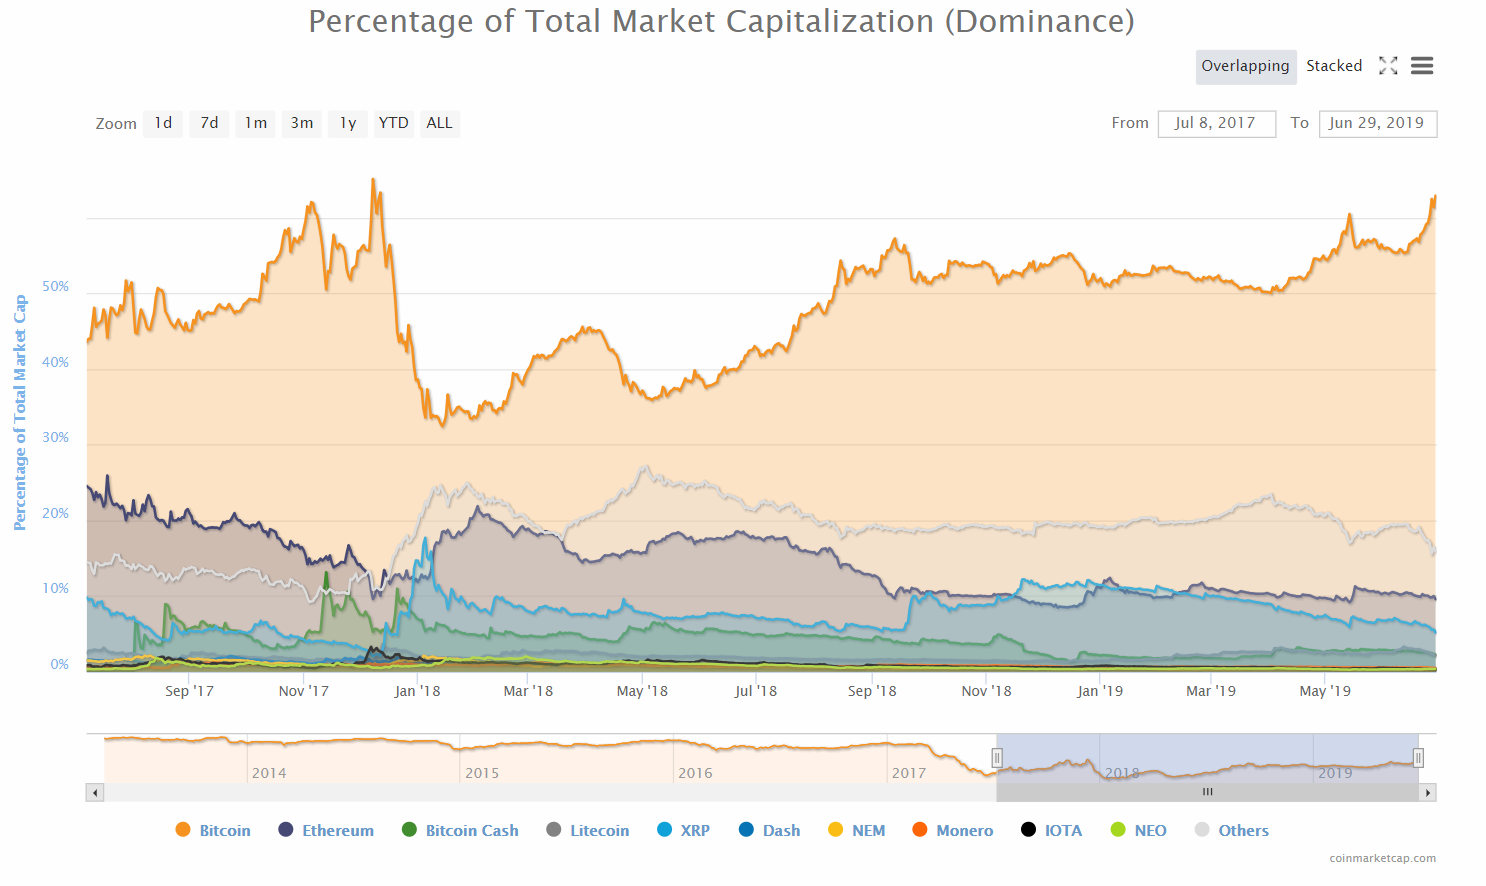 Percentage of Total Market Capitalization - Bitcoin